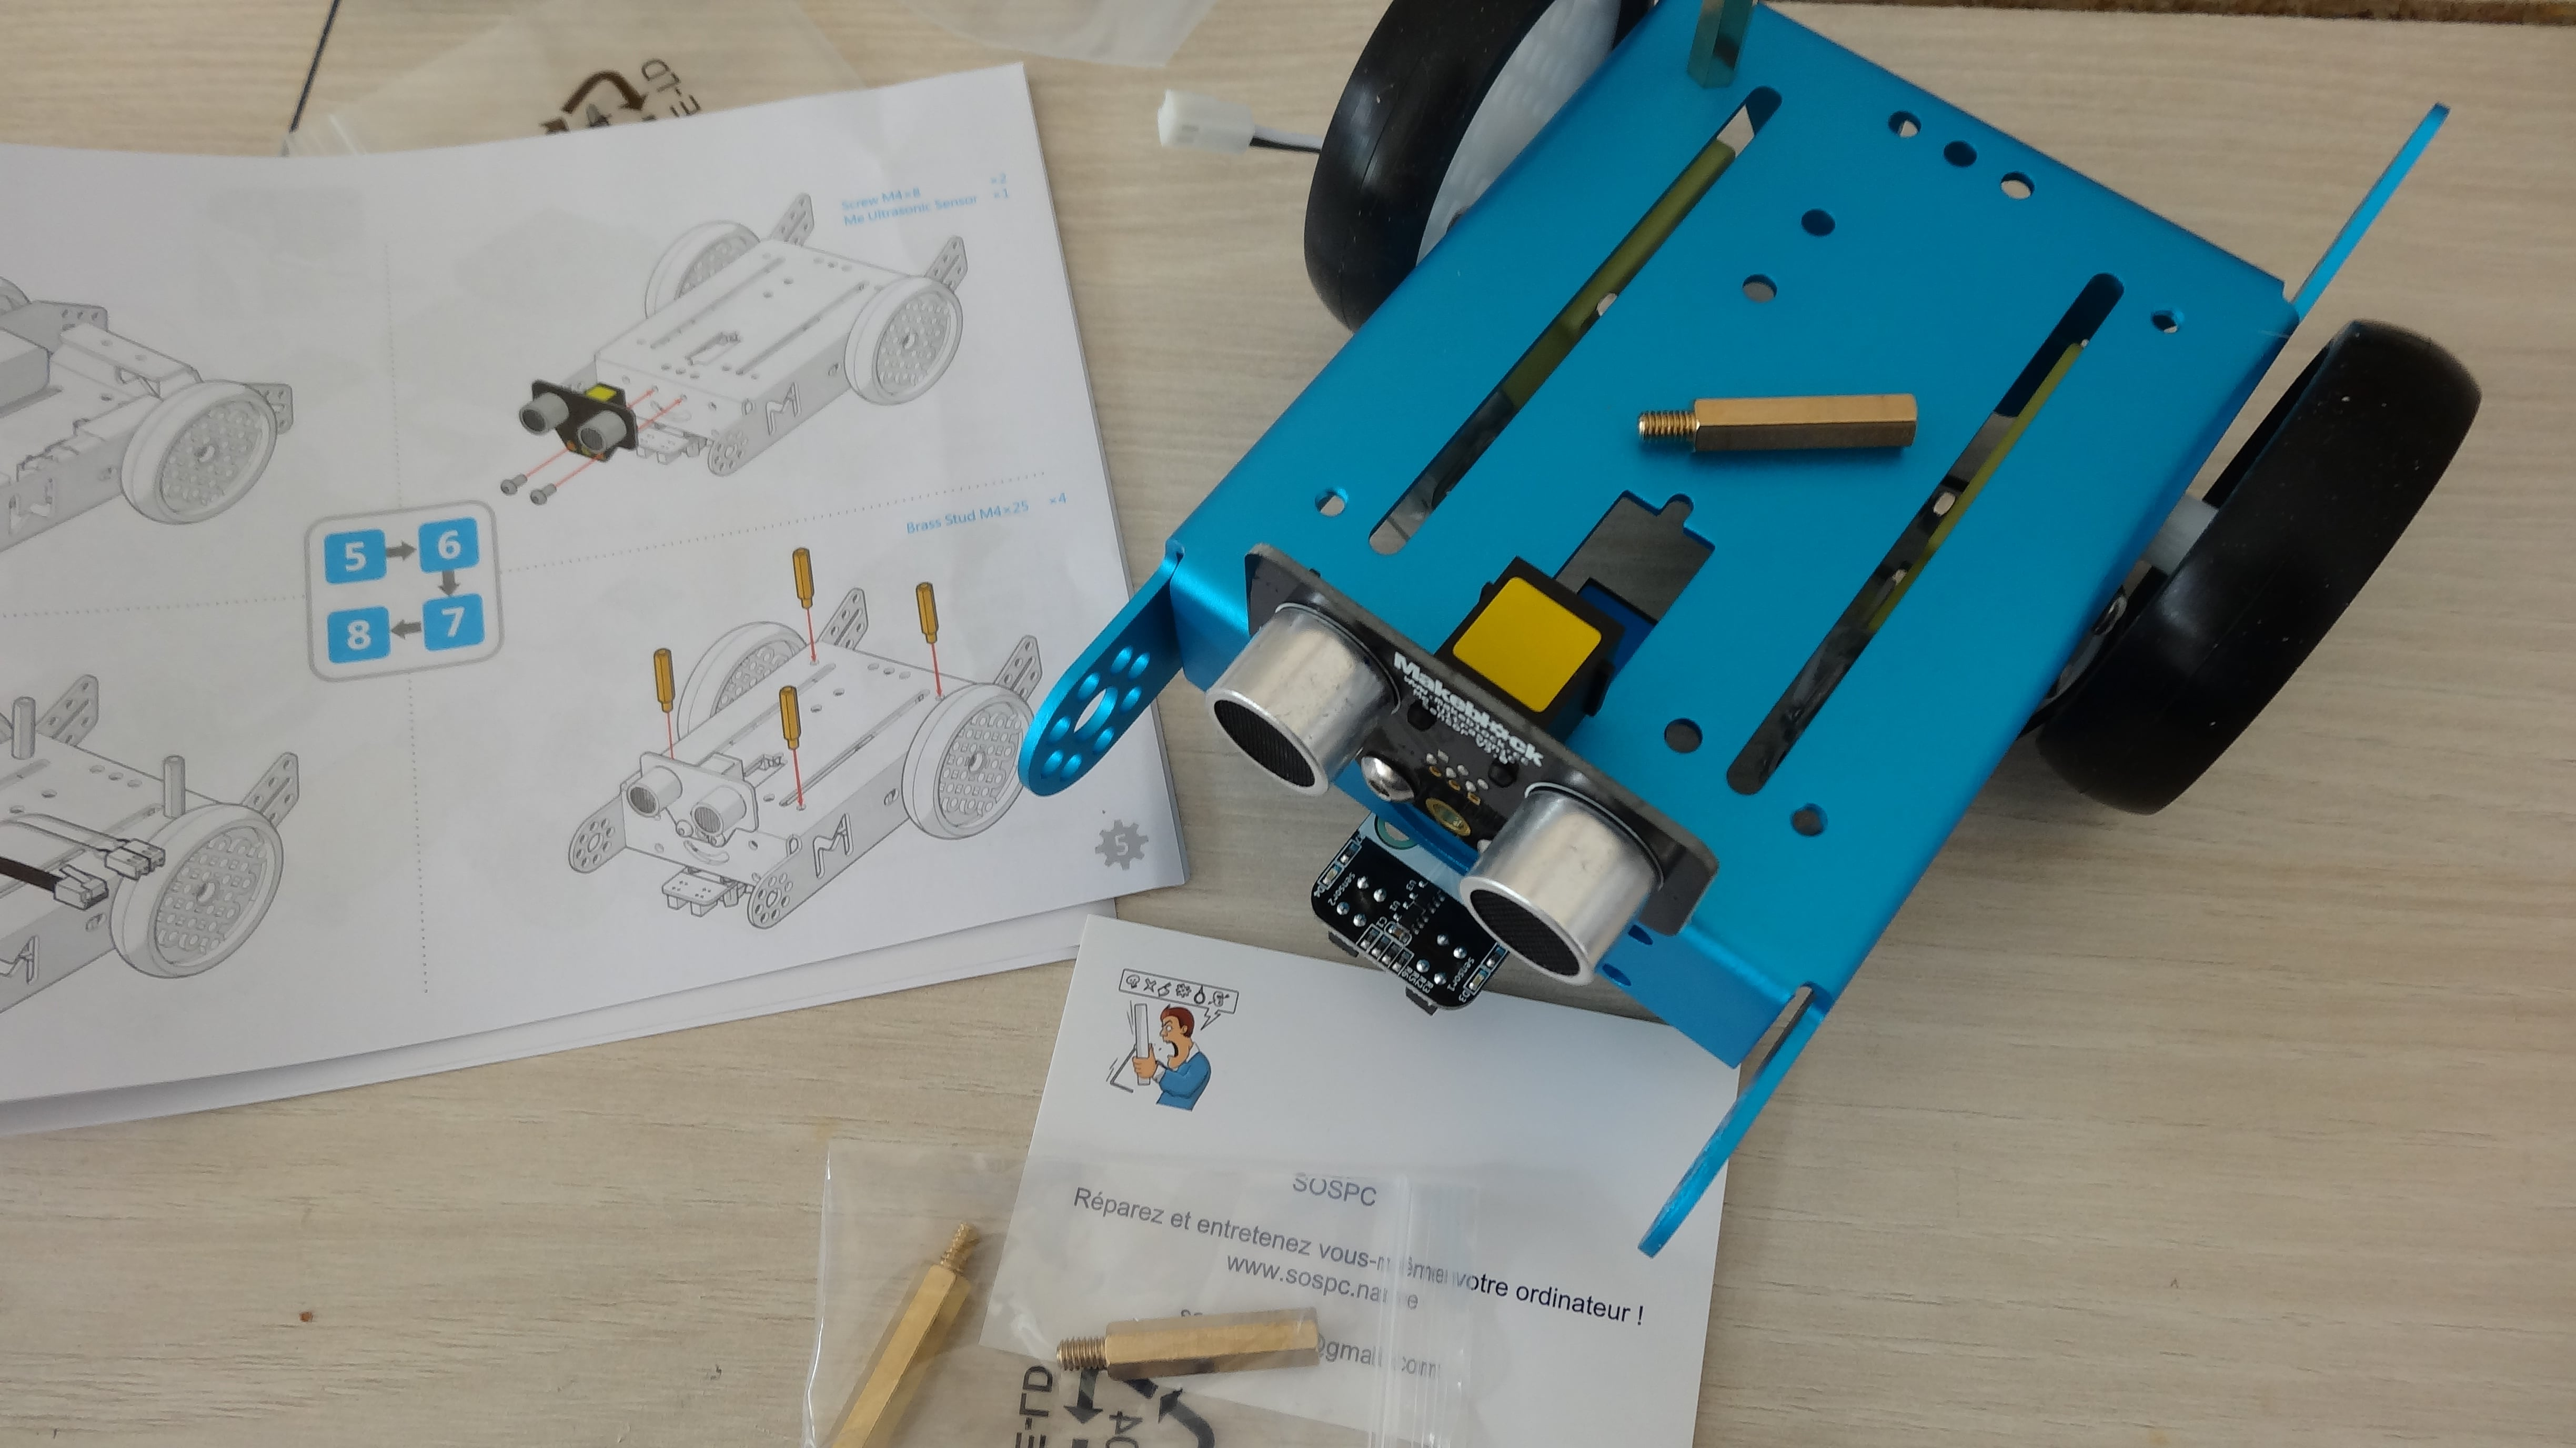 mbot-blue-un-robot-educatif-et-programmable-en-version-2-4-g-tres-interessant-legaragedupc-fr-24